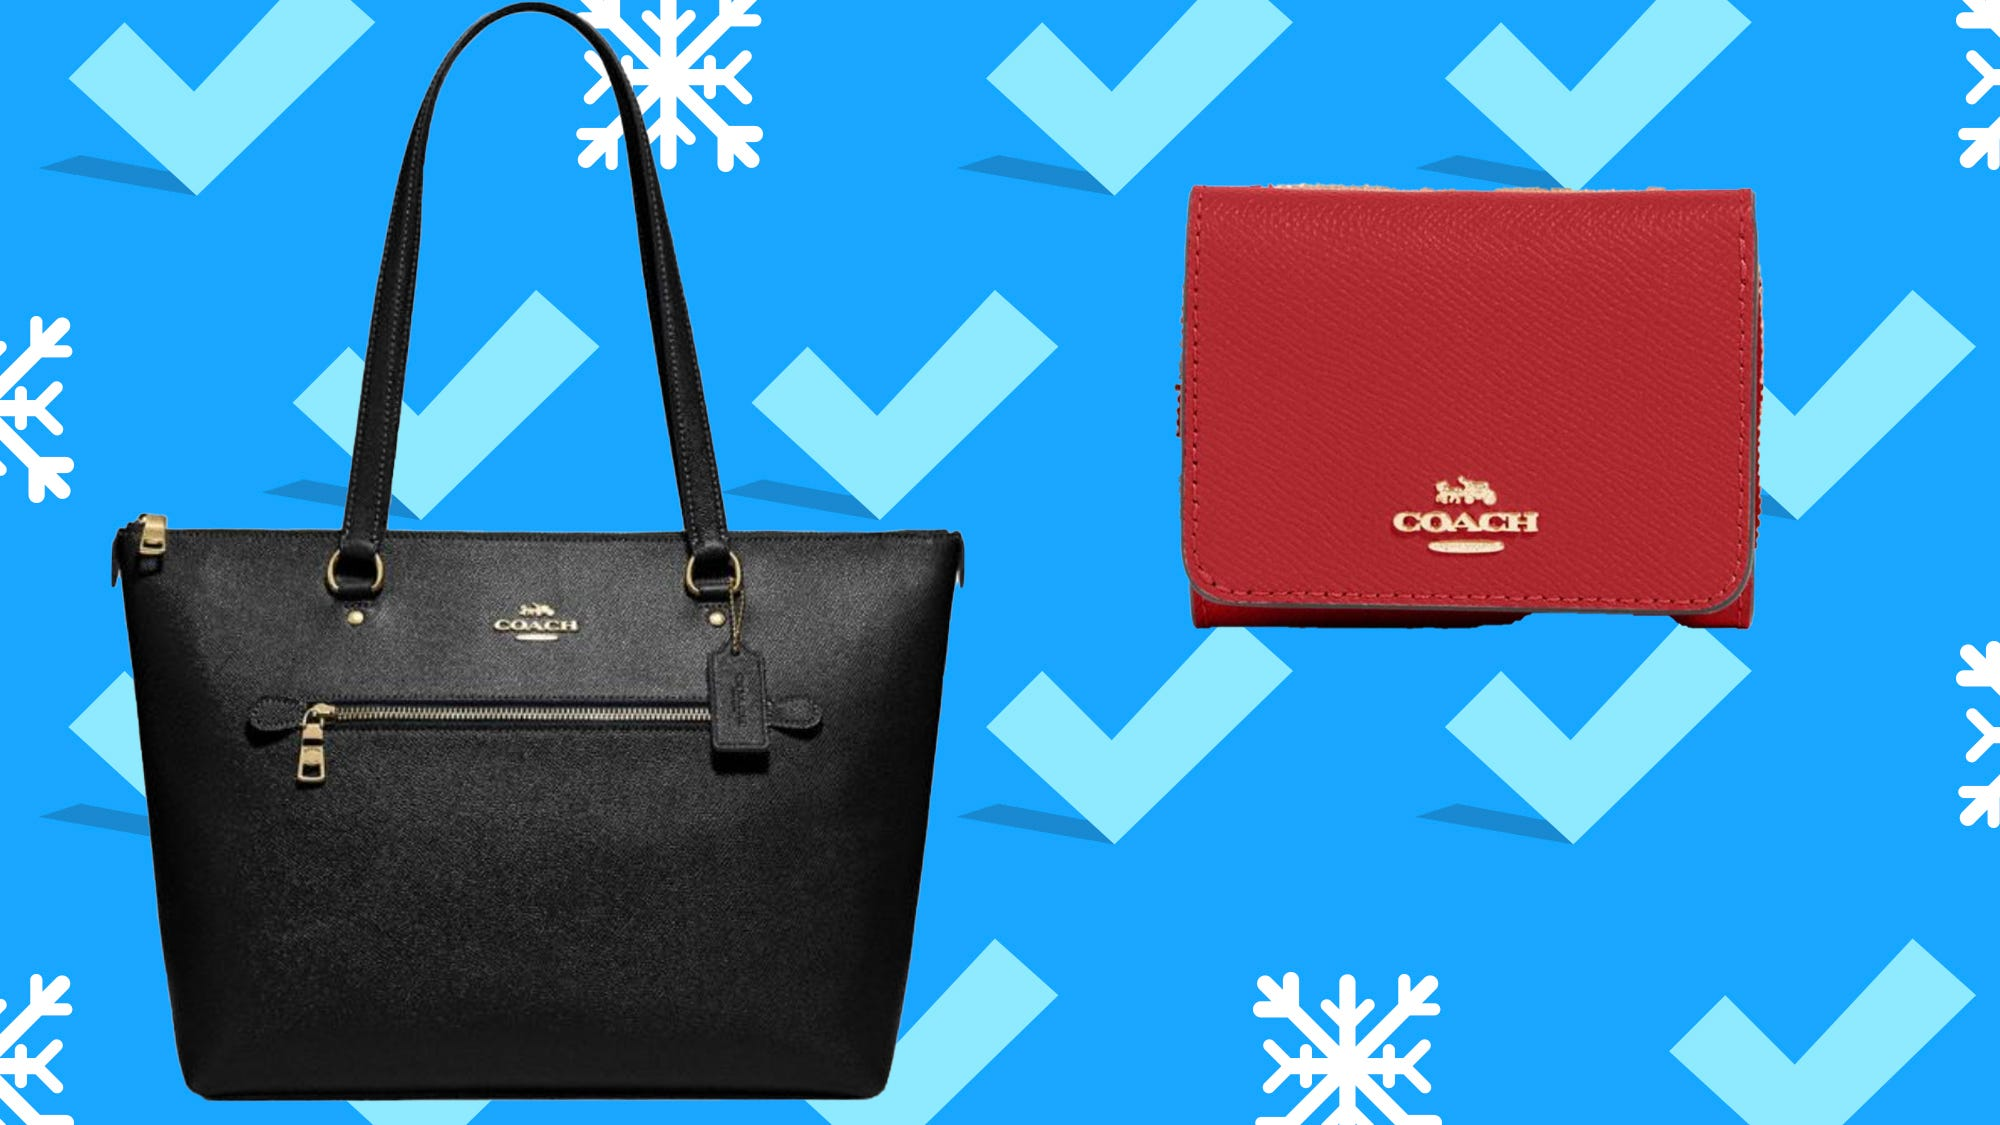 Black Friday 2020: Coach Outlet bags are up to 75% off right now